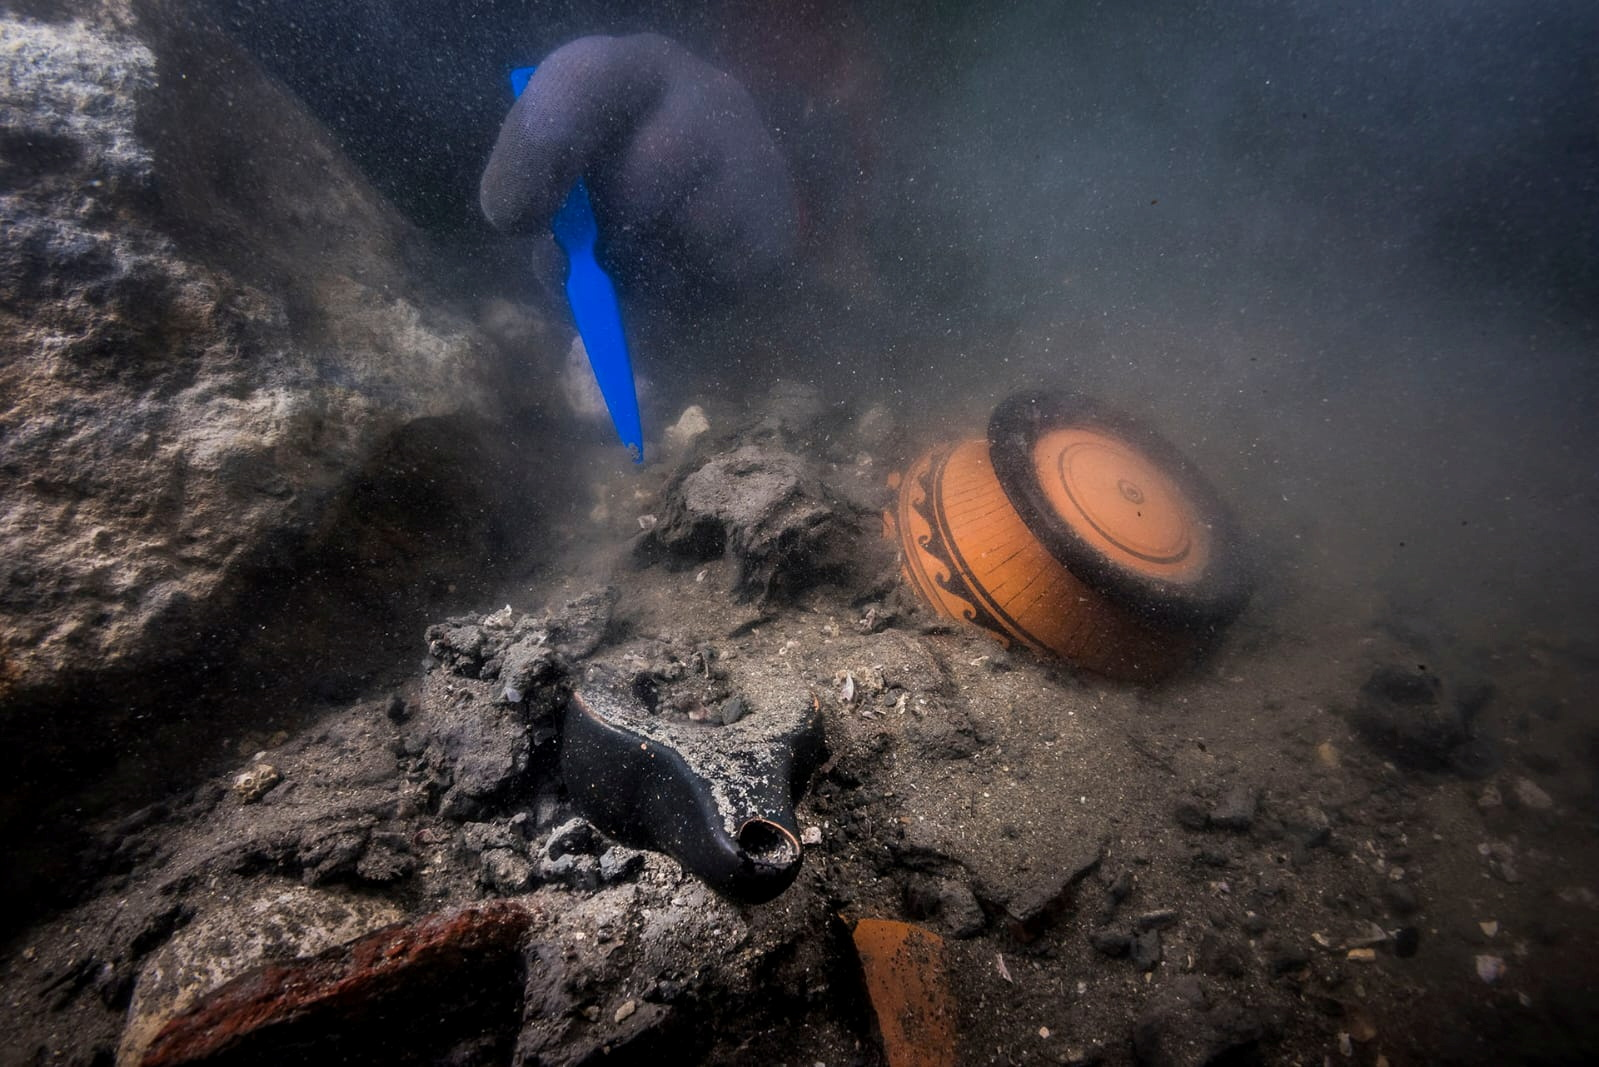 Remains of an ancient military vessel discovered in the Mediterranean sunken city of Thonis-Heracleion off the coast of Alexandria, Egypt, are seen?in this handout image released on July 19, 2021. The Egyptian Ministry of Antiquities/Handout via REUTERS